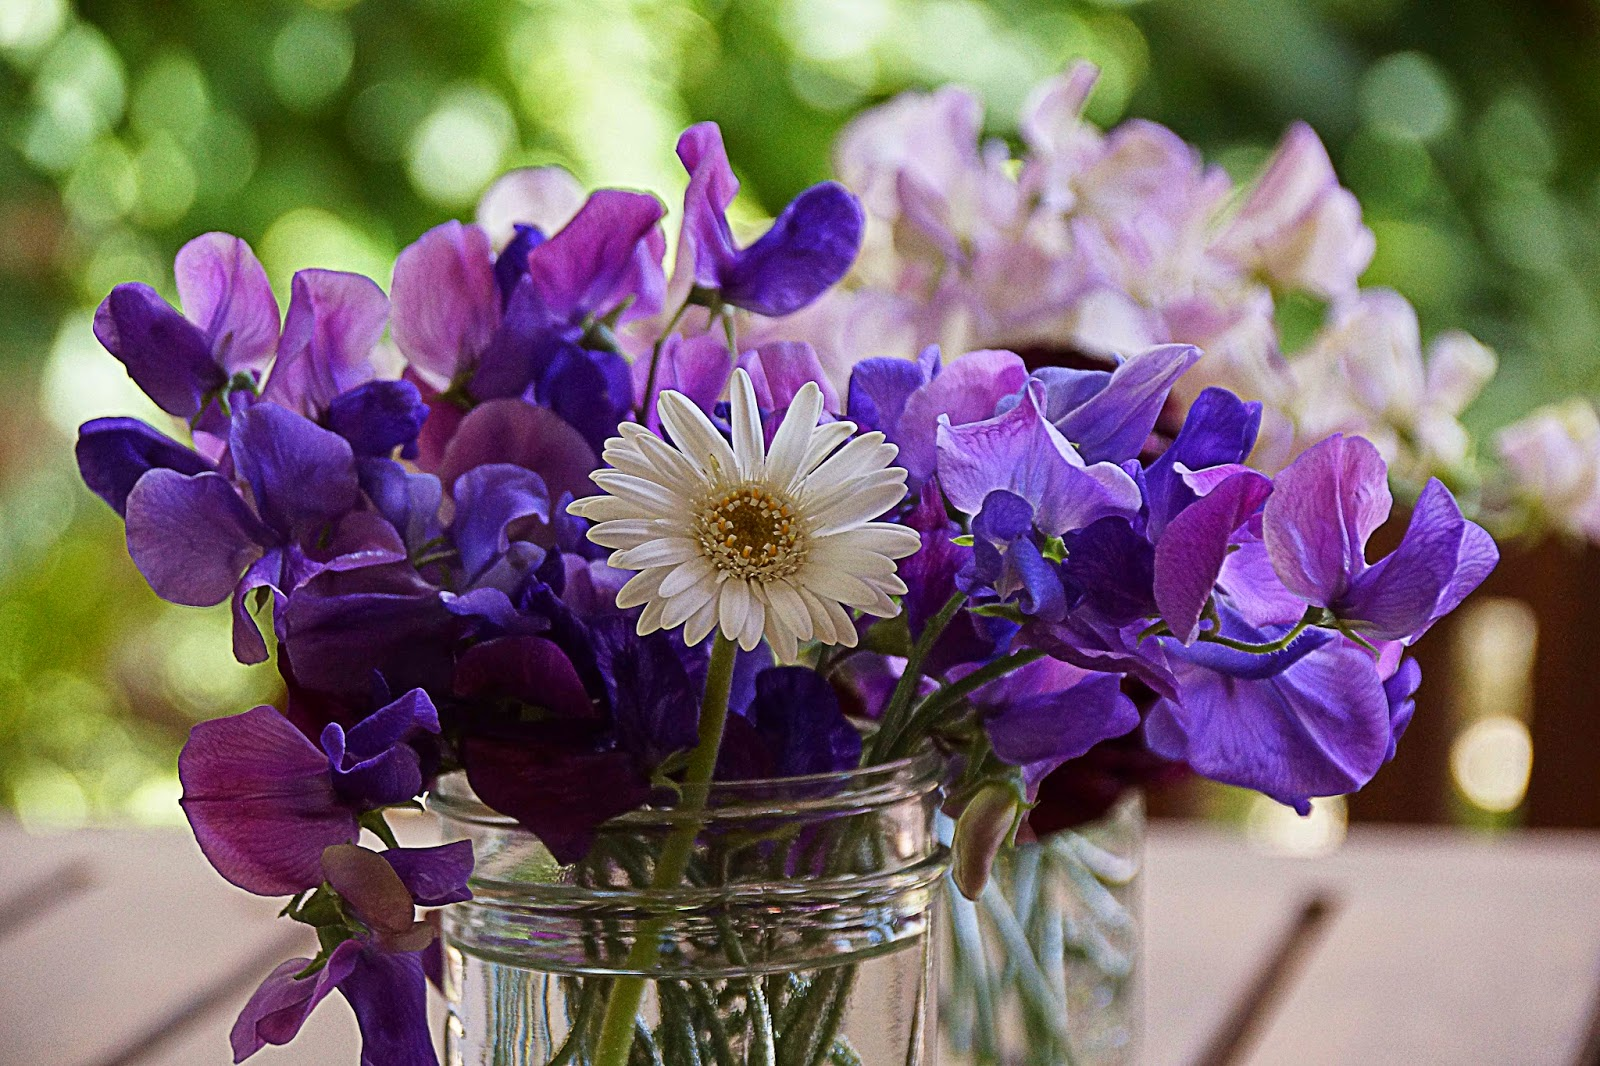 April Birth Flower Daisy And Sweet Pea Avas Flowers